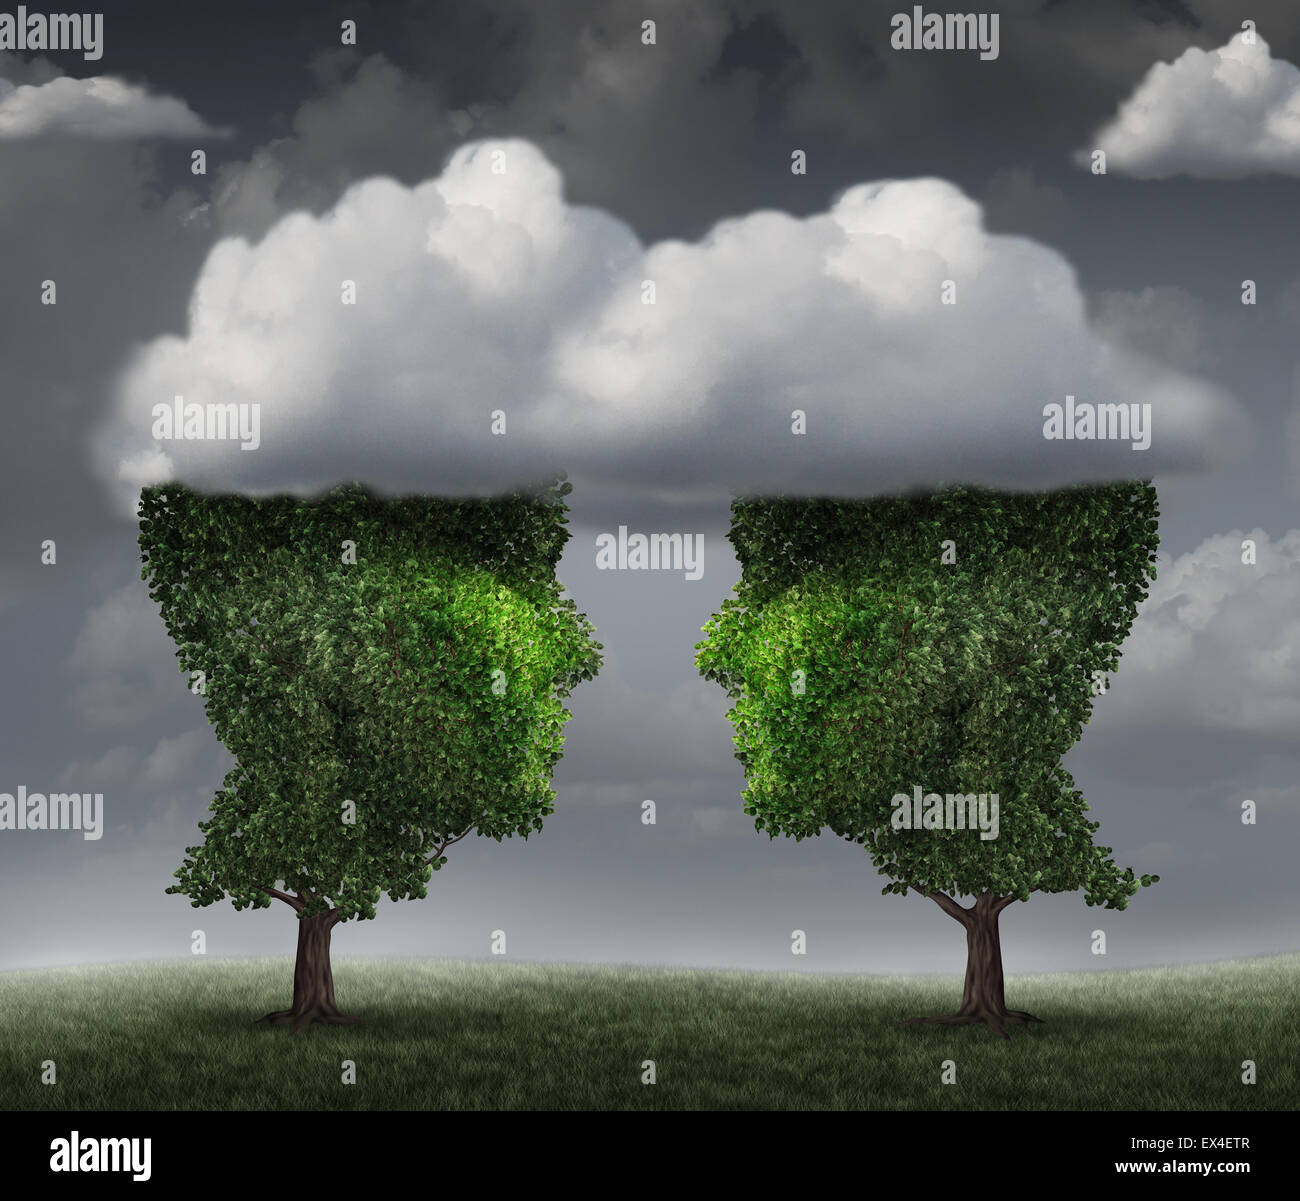 Cloud relationship and growing network communication with a group of two trees shaped as a human head in the clouds - Stock Image